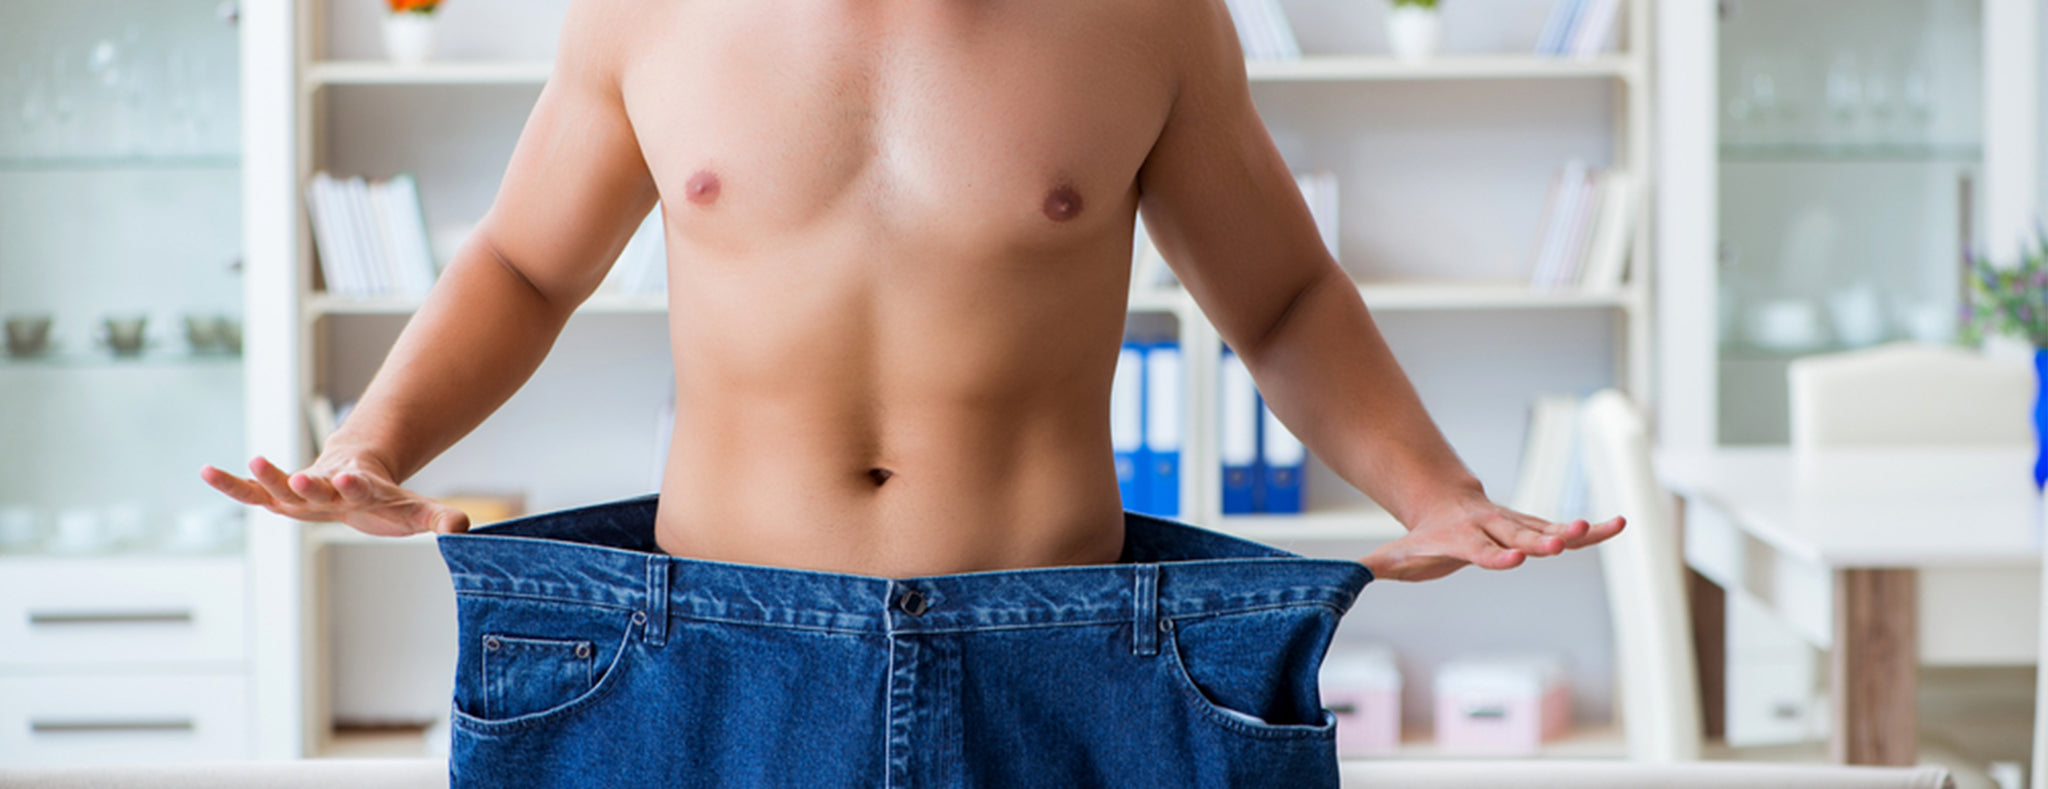 QUICK WEIGHT LOSS IS POSSIBLE THROUGH WORKOUT